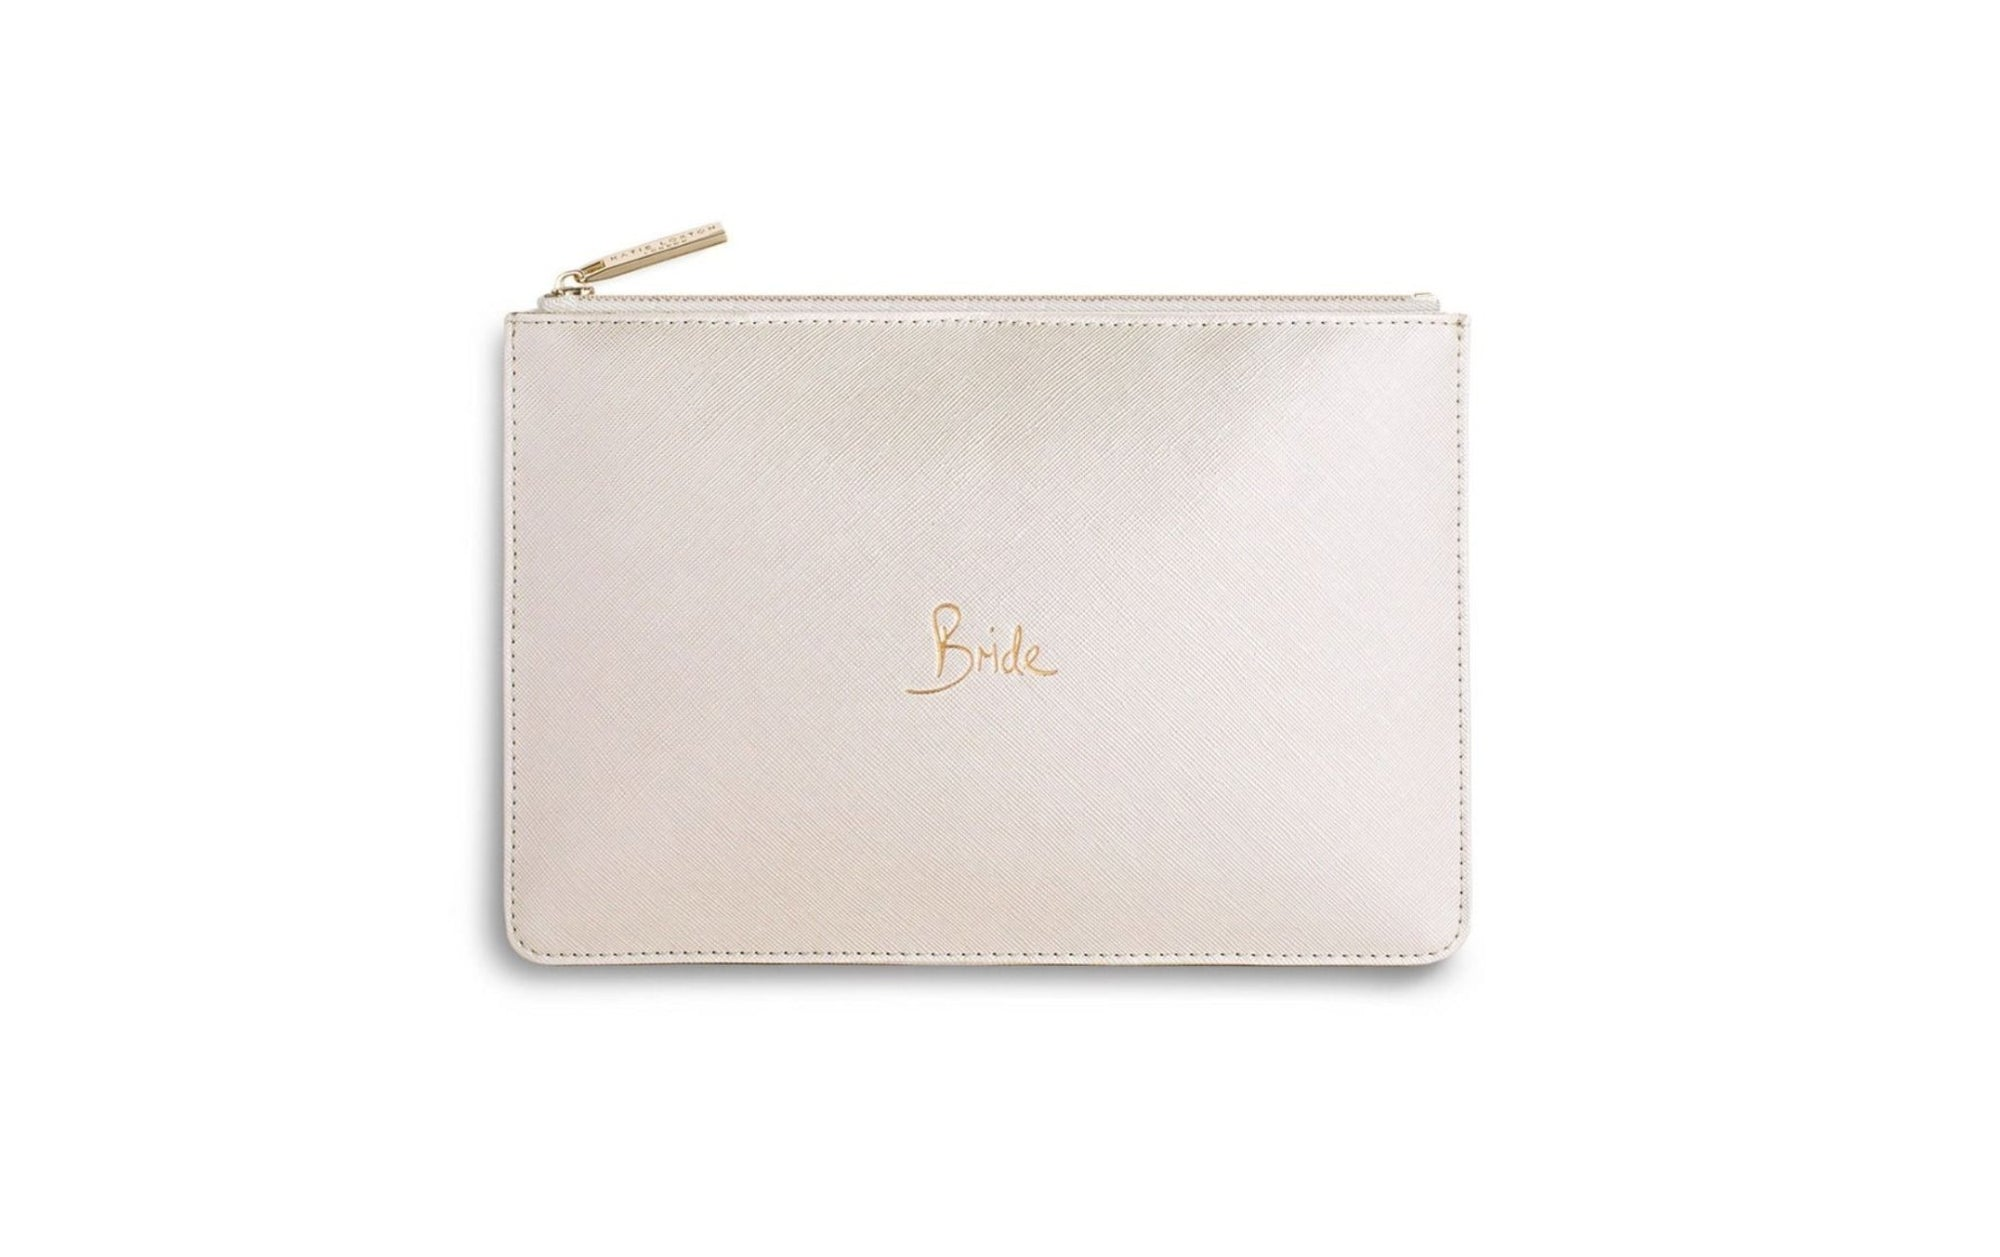 PERFECT POUCH-BRIDE - Molly's! A Chic and Unique Boutique